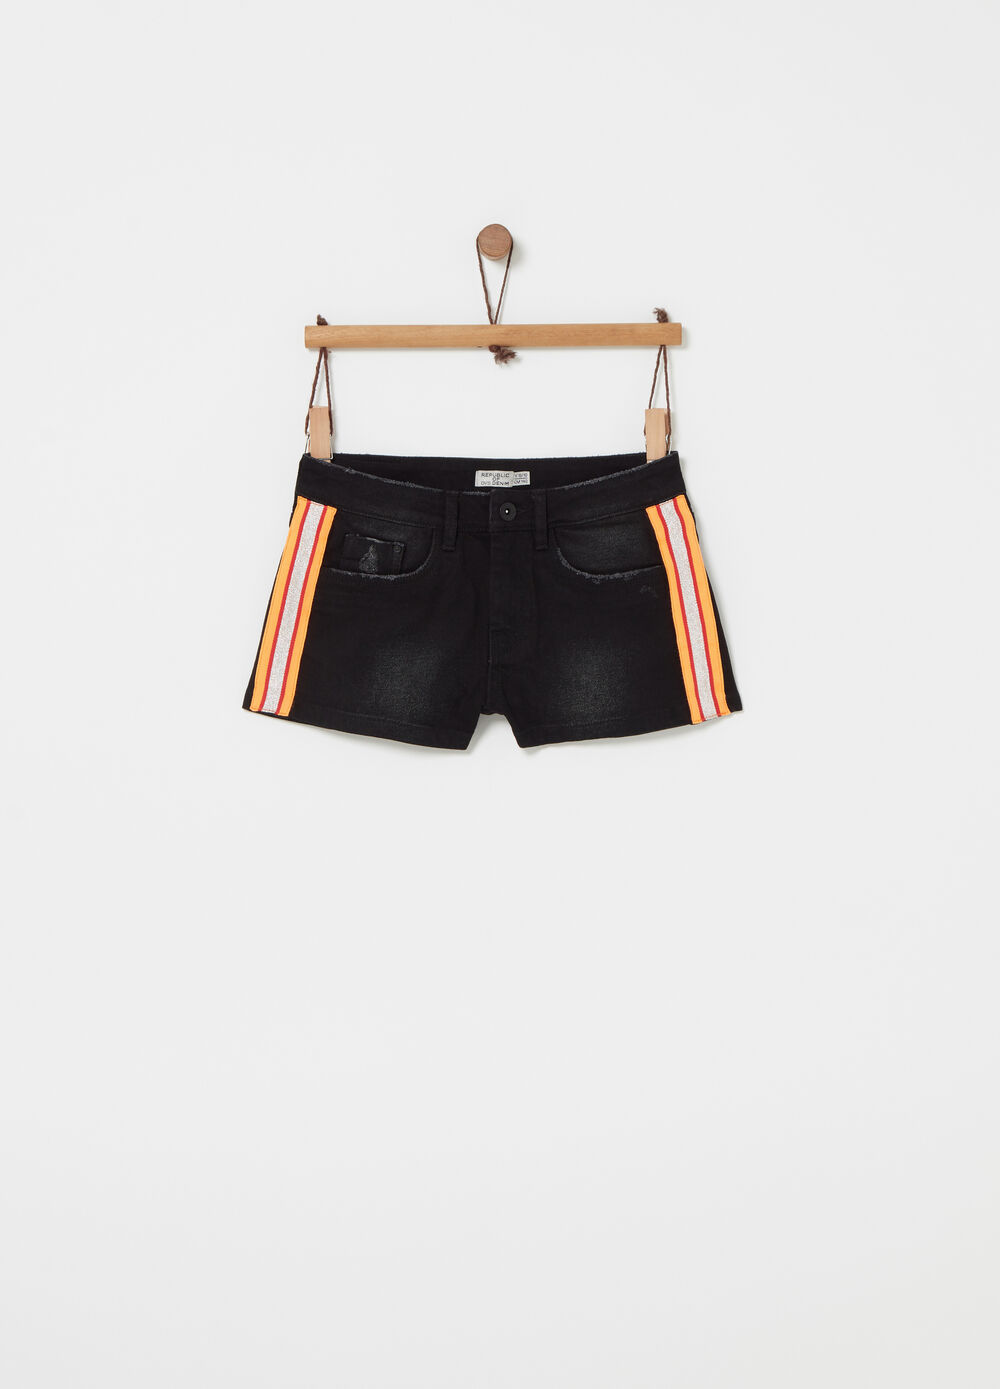 Shorts with striped tape and fringed edges